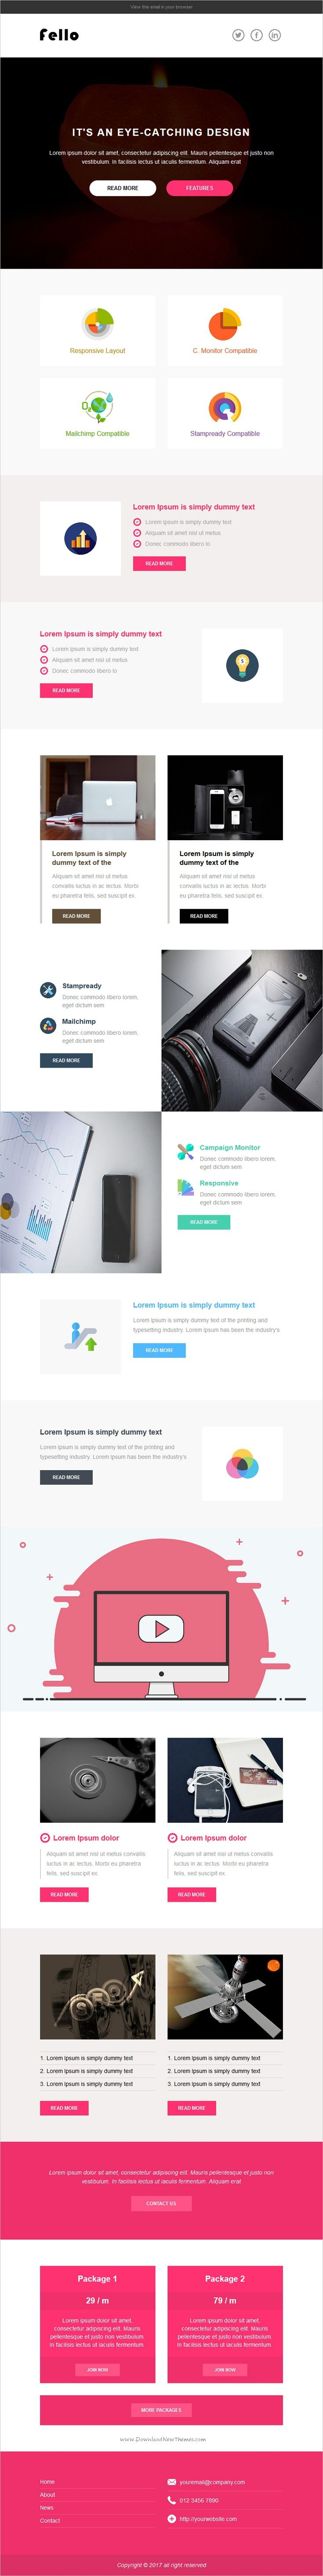 Fello is clean and modern design responsive #email #newsletter template for viral #marketing with #campaign monitor, Mailchimp and stampready builder download now..